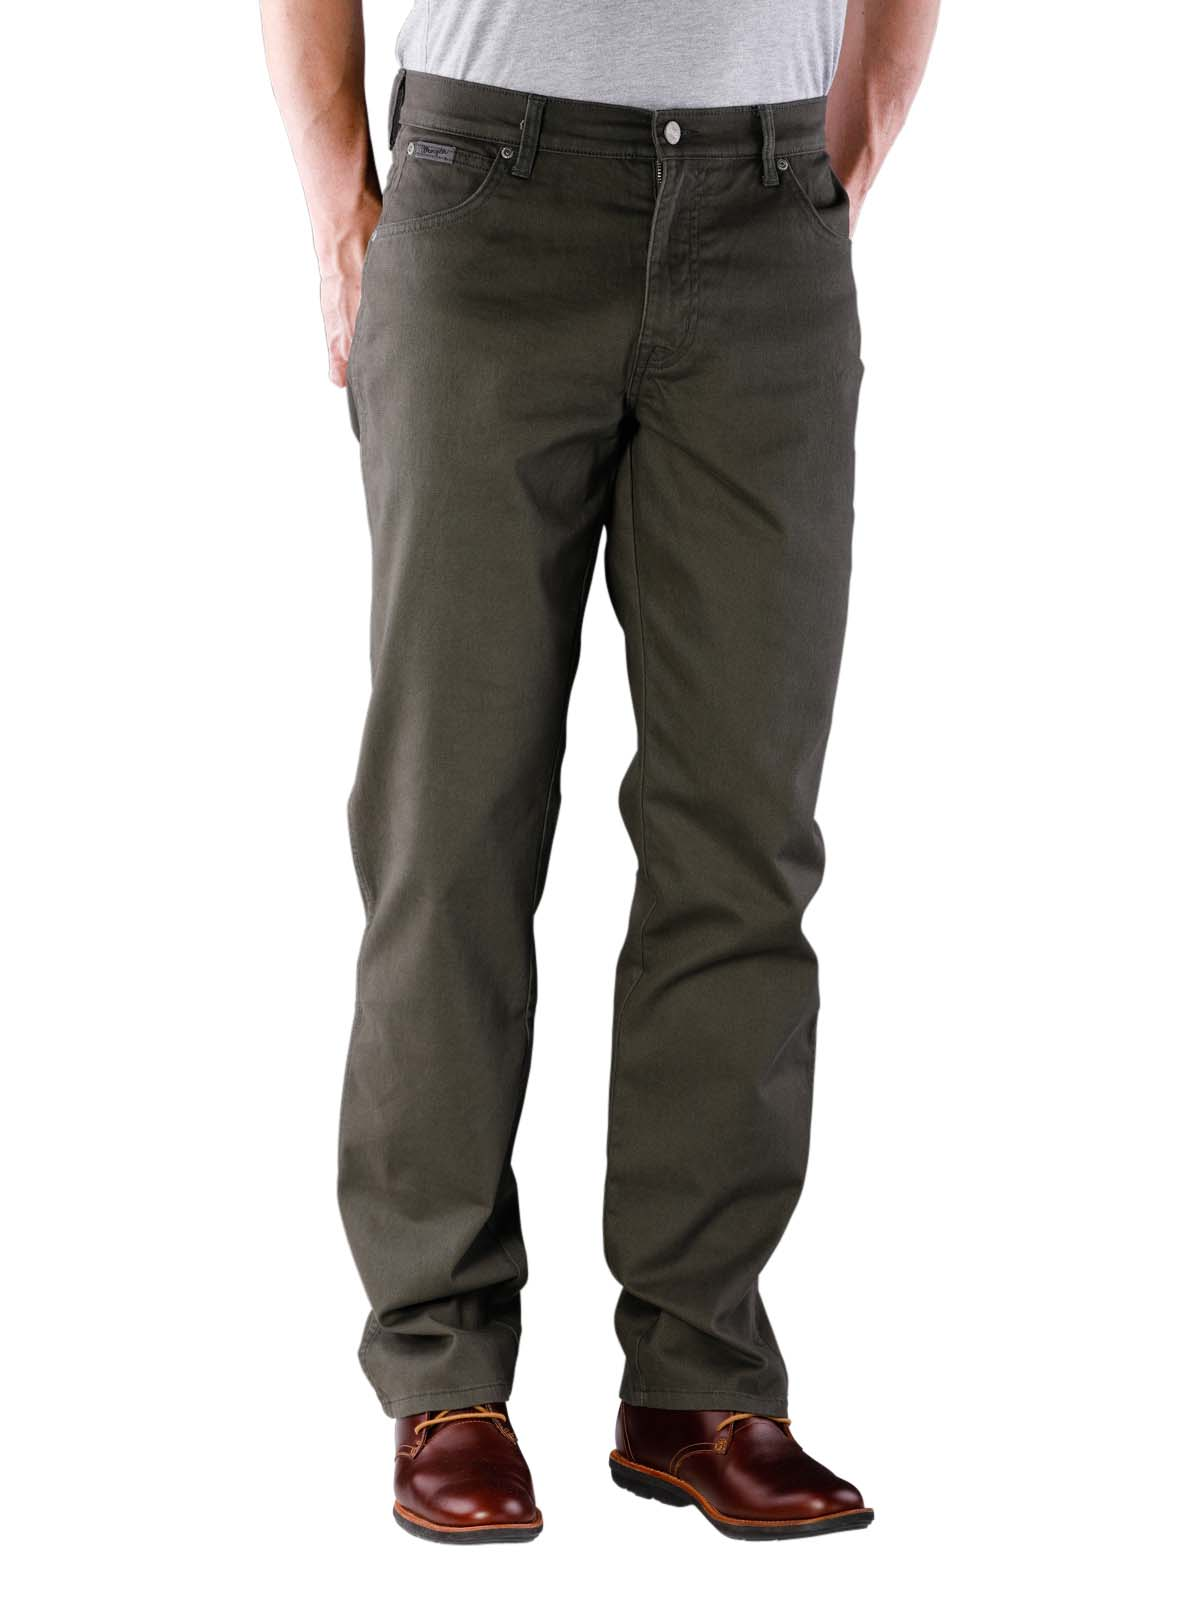 Lee Brooklyn New Men's Cords Deep Green Stretch Corduroy Jeans Straight Fit